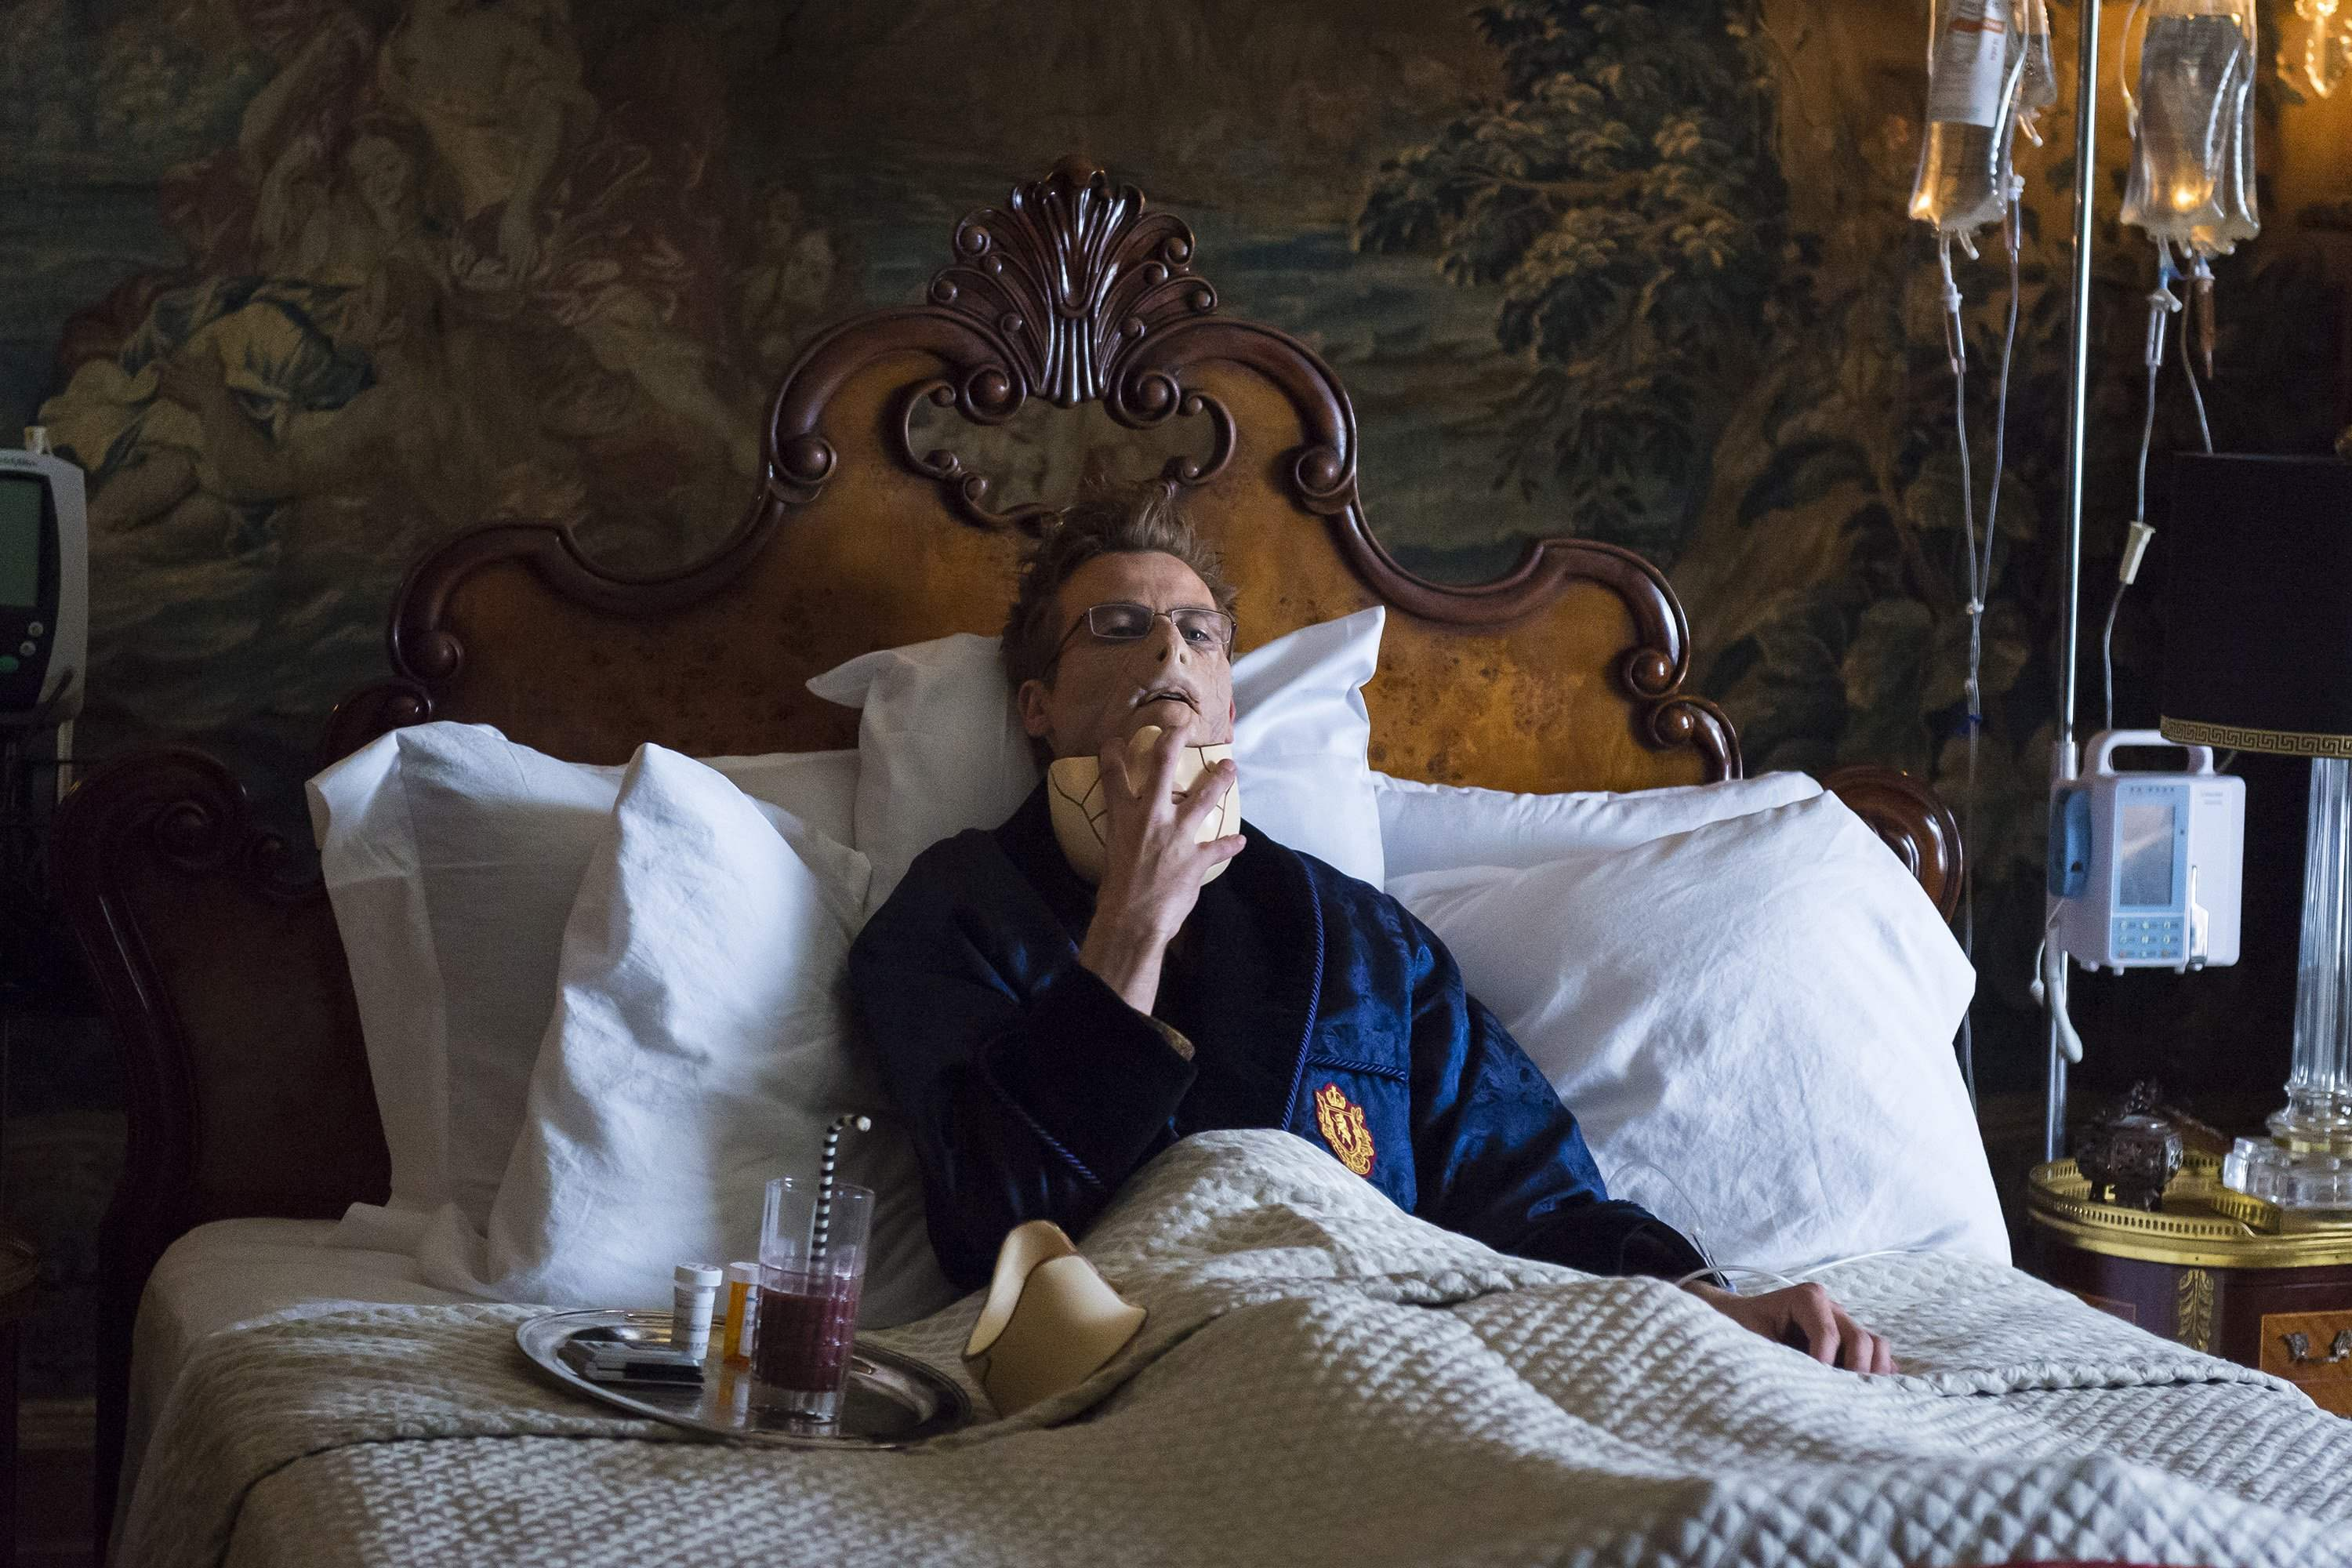 Mason Verger recuperates in bed after his vicious encounter with Hannibal Lecter